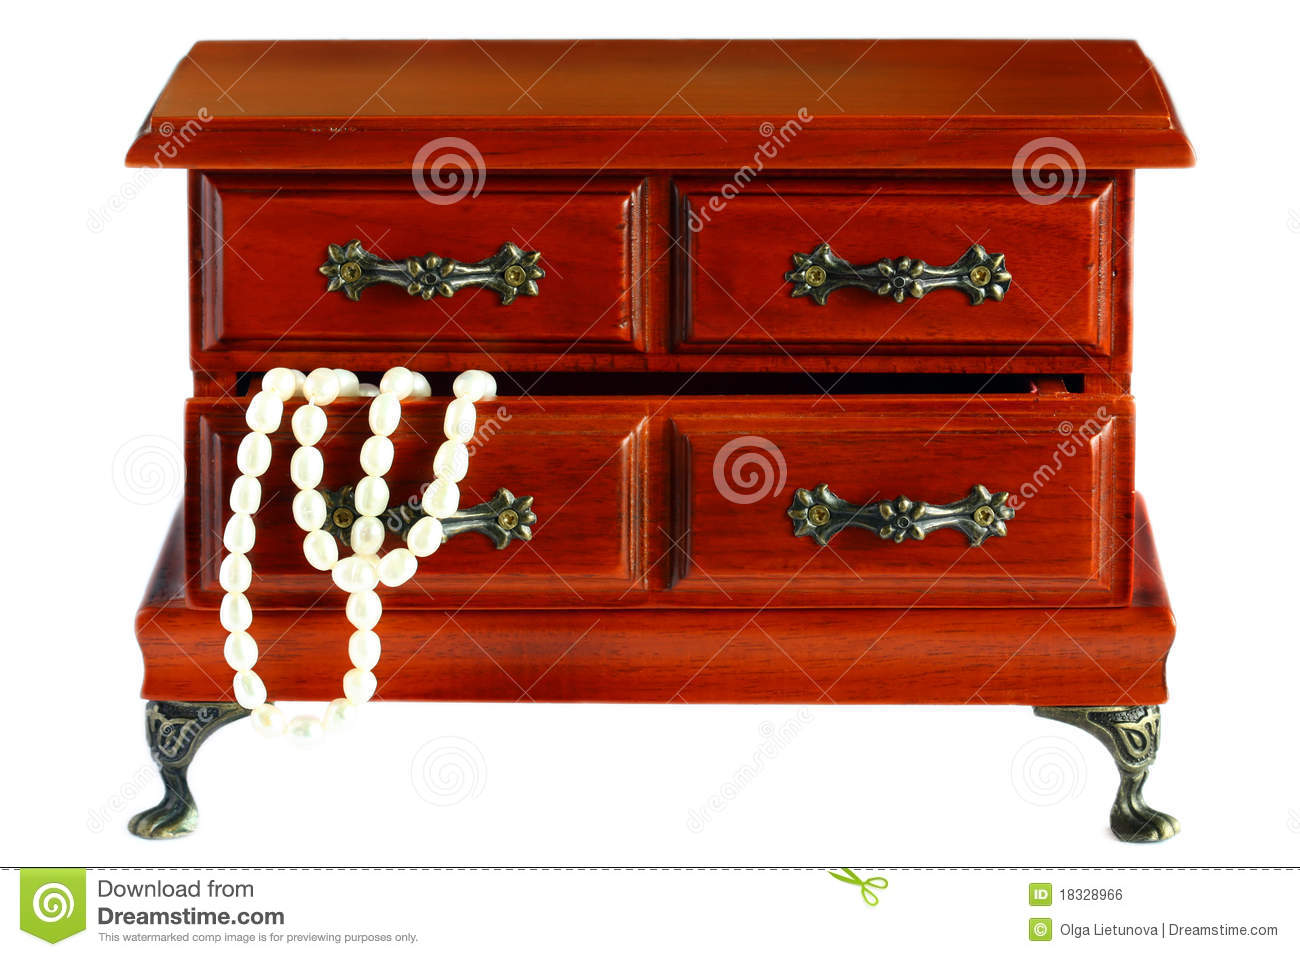 wooden chest of drawers fpr jewelry stock photo image 18328966. Black Bedroom Furniture Sets. Home Design Ideas